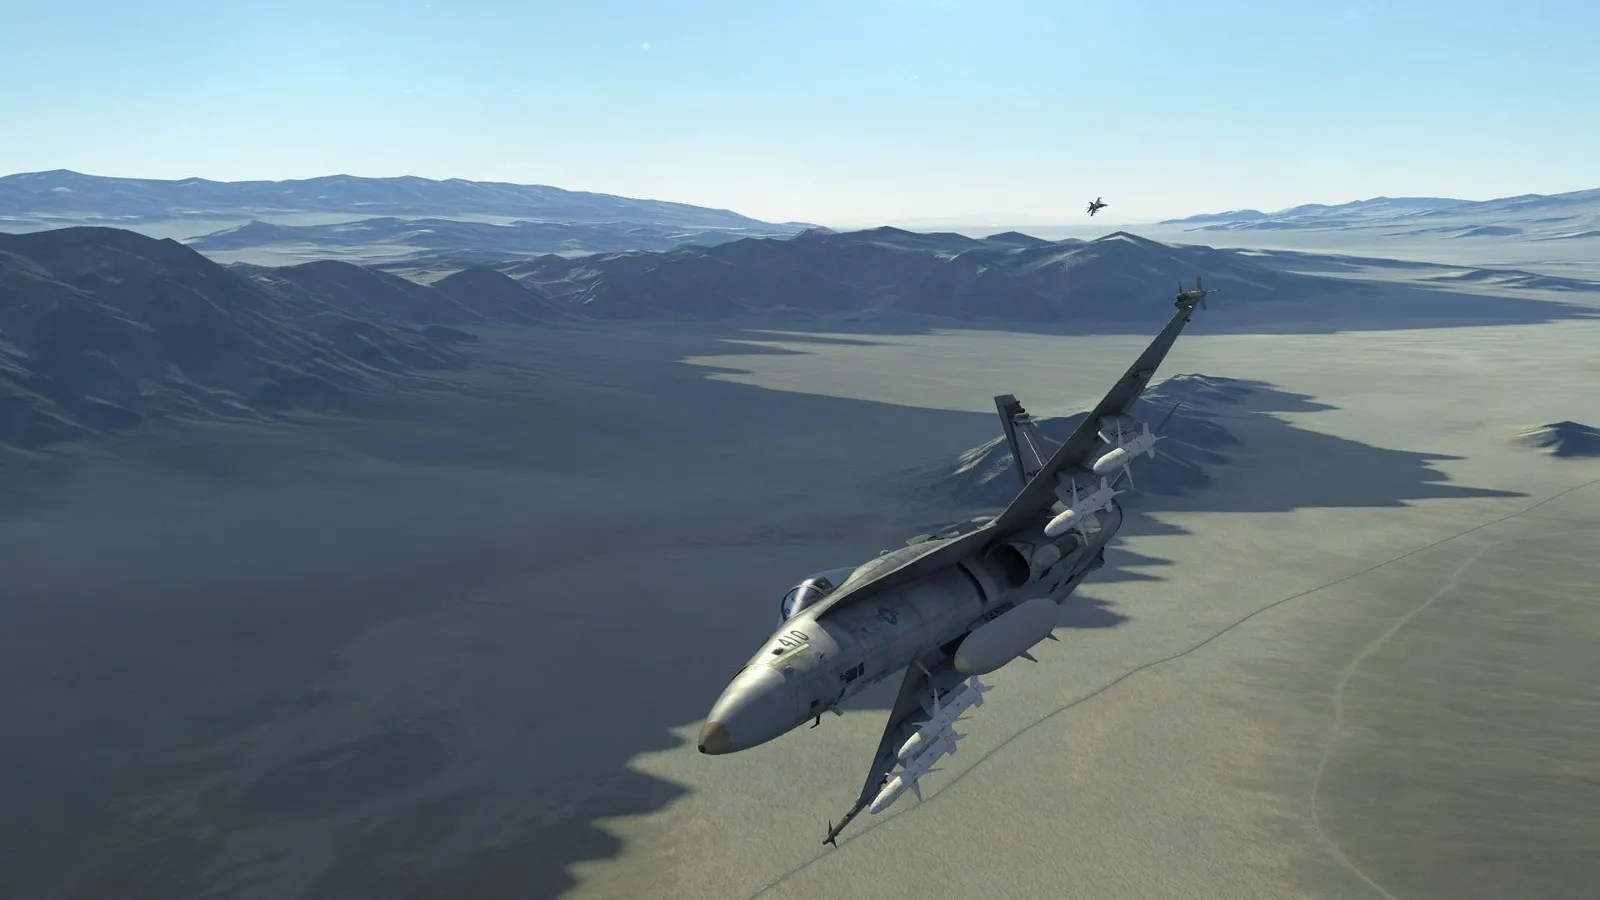 Car Racing Flag Wallpaper Dcs World Is About To Become The Air Combat Sim Of My Dreams